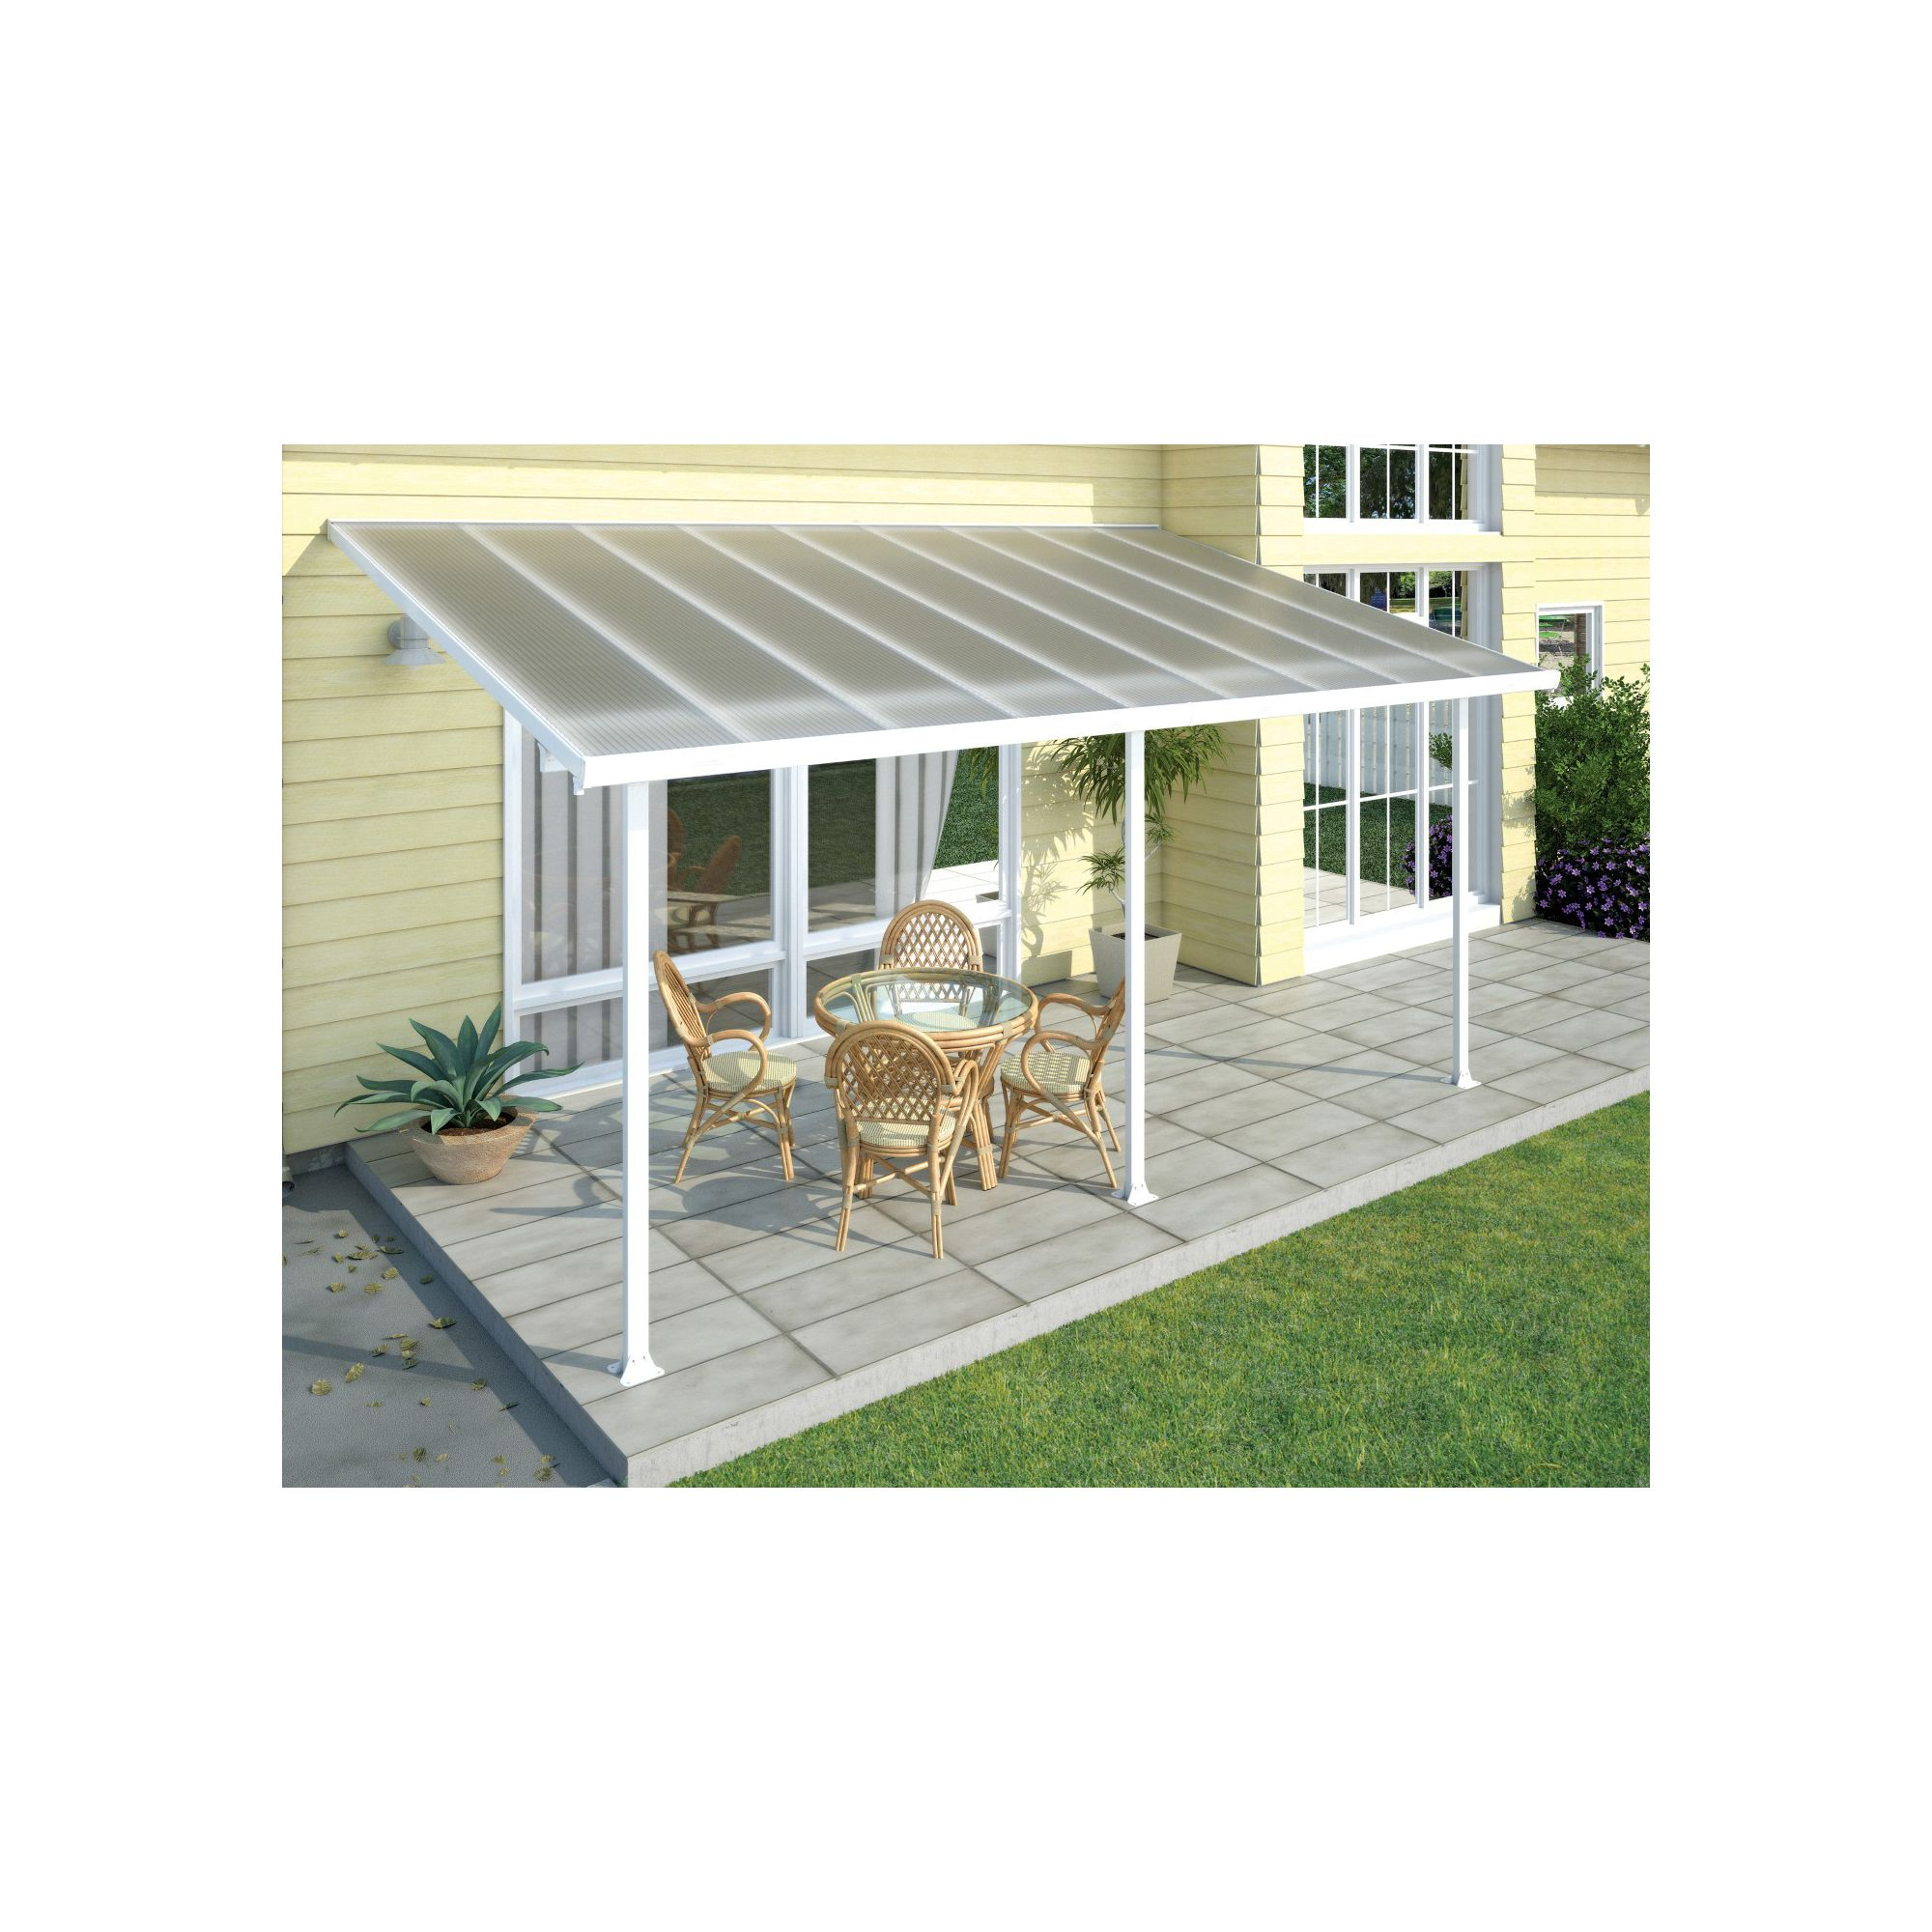 FERIA LEAN TO CARPORT AND PATIO COVER 4X14.57 WHITE at Tesco Direct